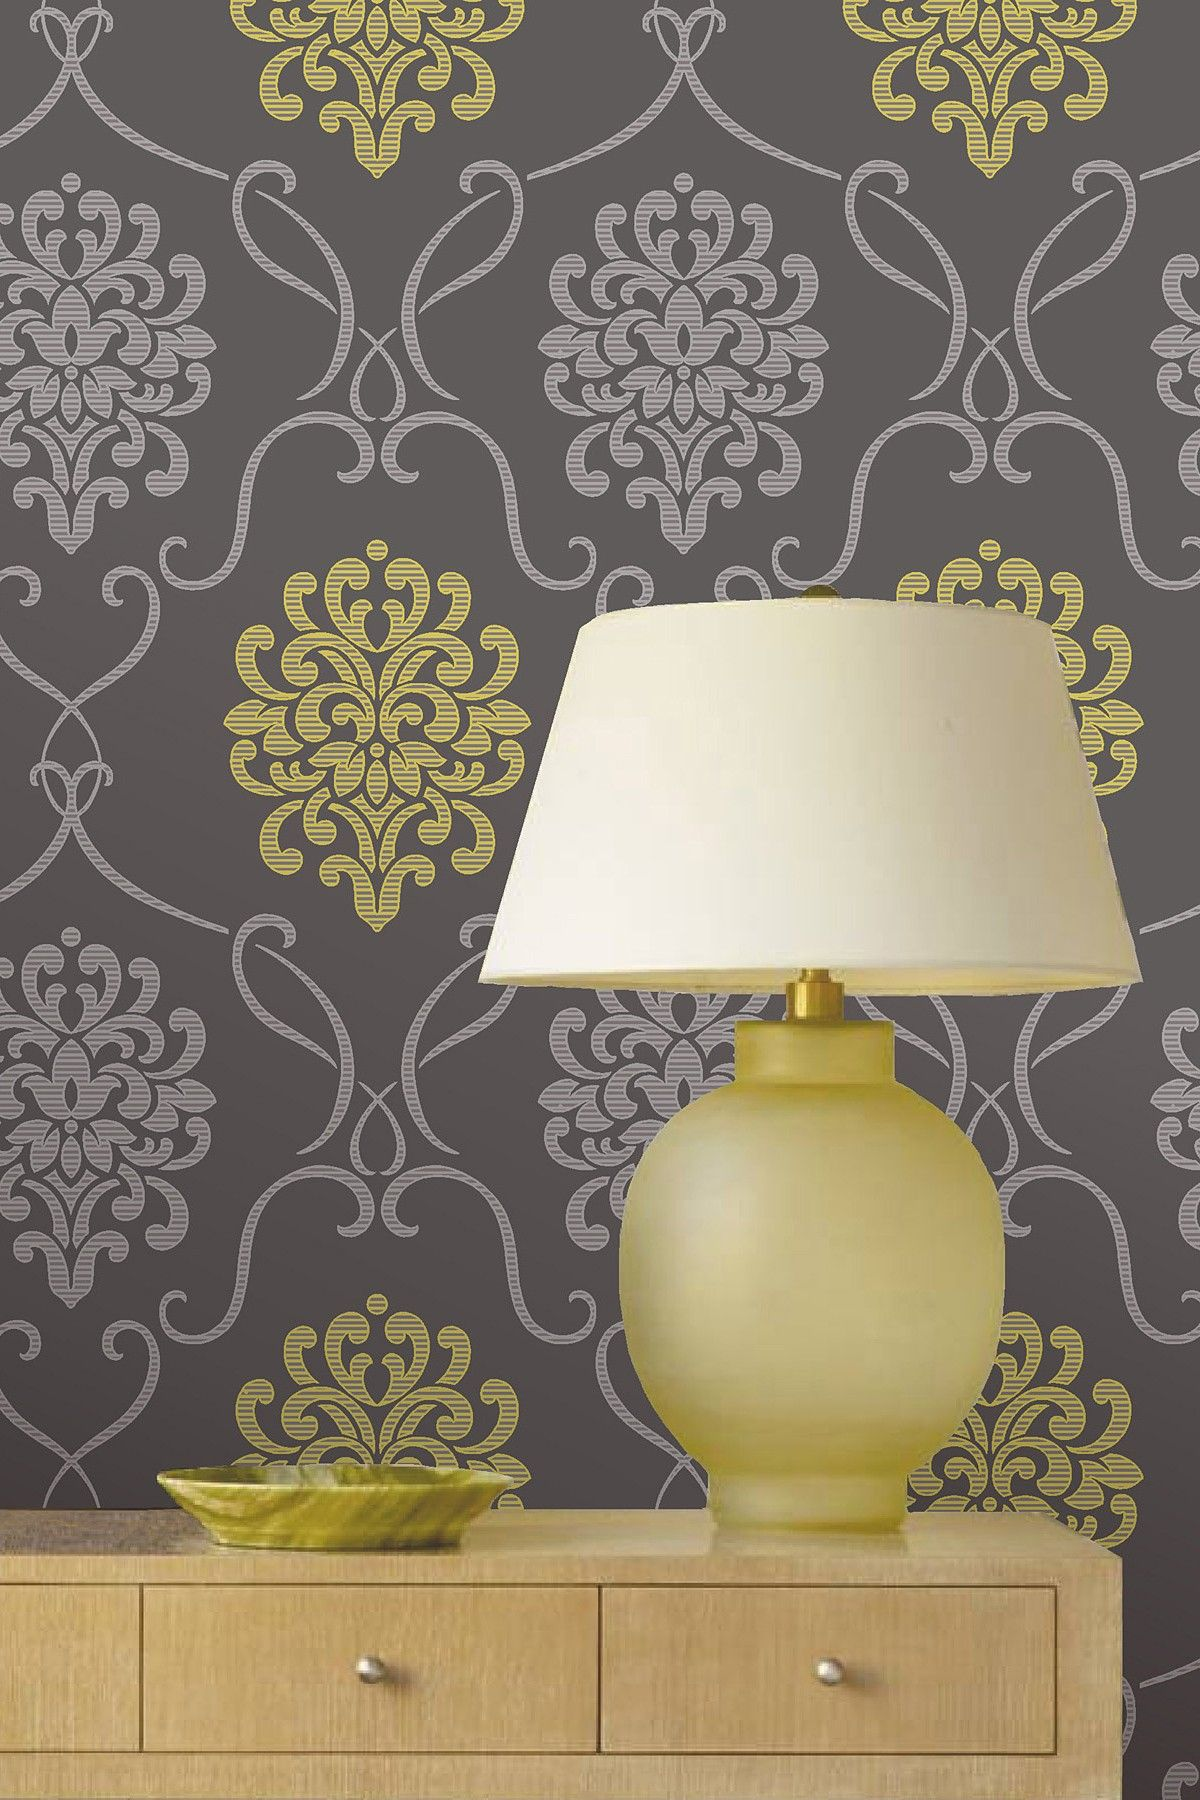 A contemporary twist on a classica mod damask design wallpaper a contemporary twist on a classica mod damask design wallpaper amipublicfo Image collections